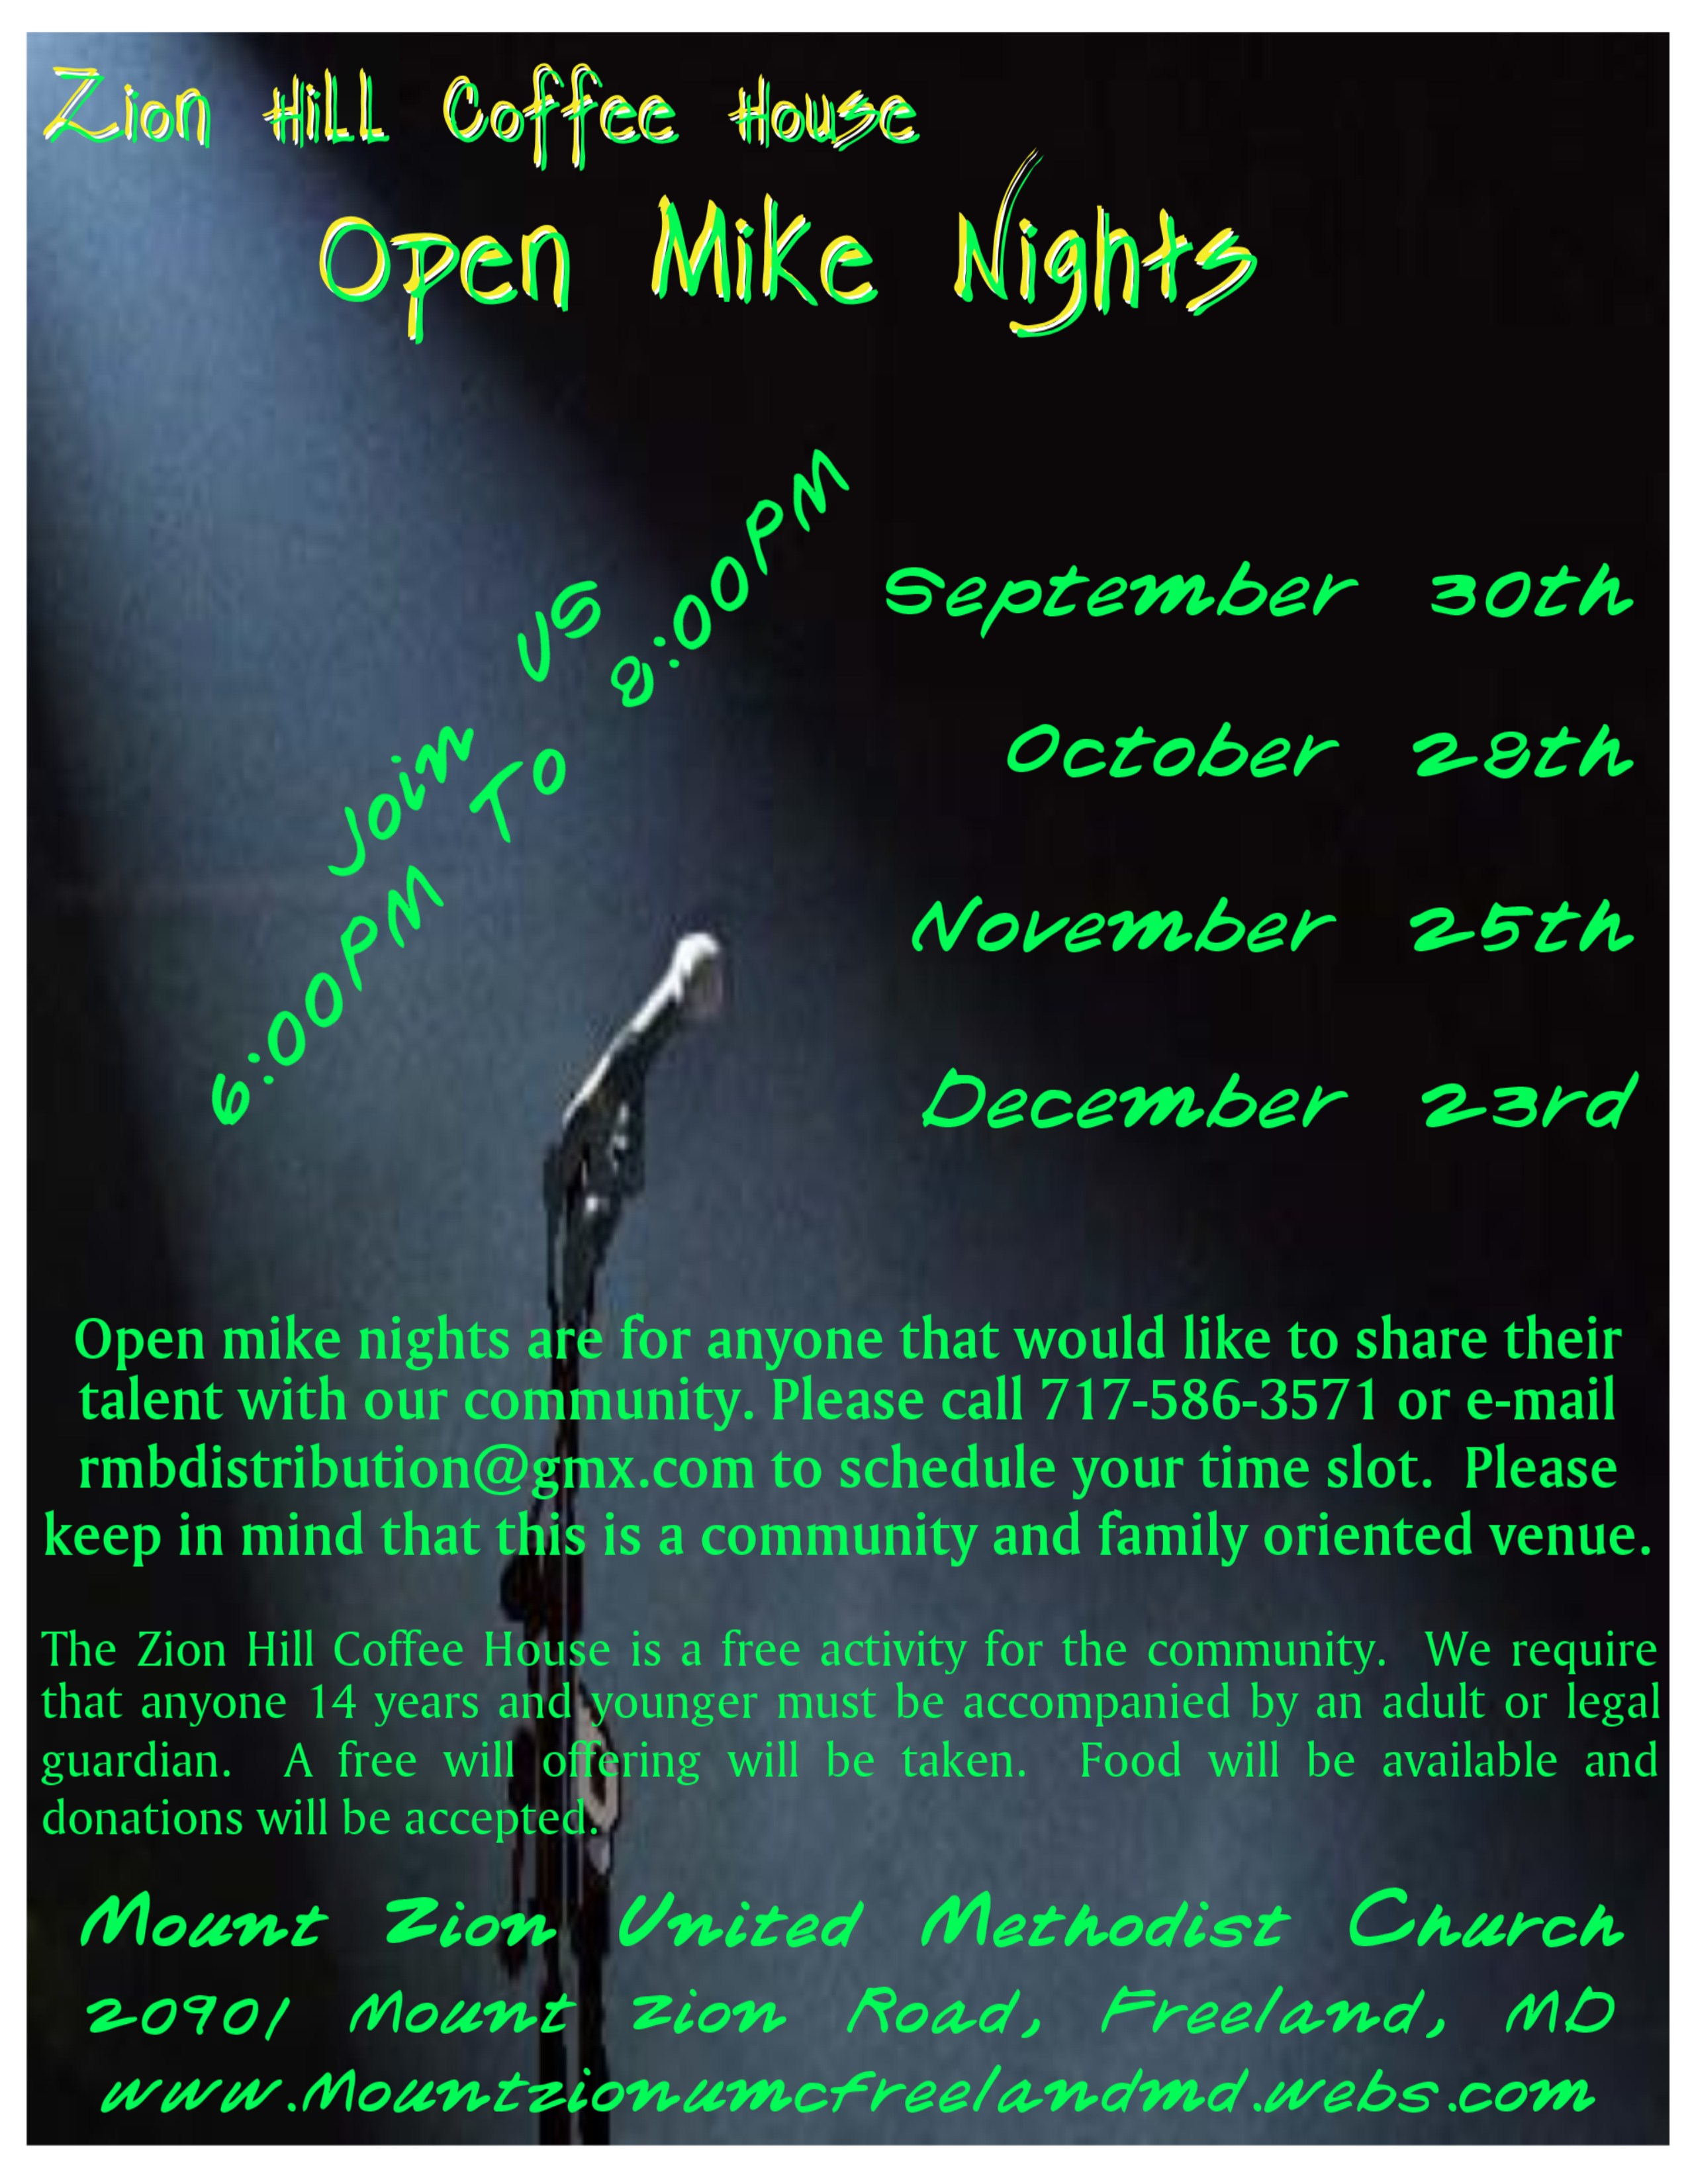 Open Mike Nights